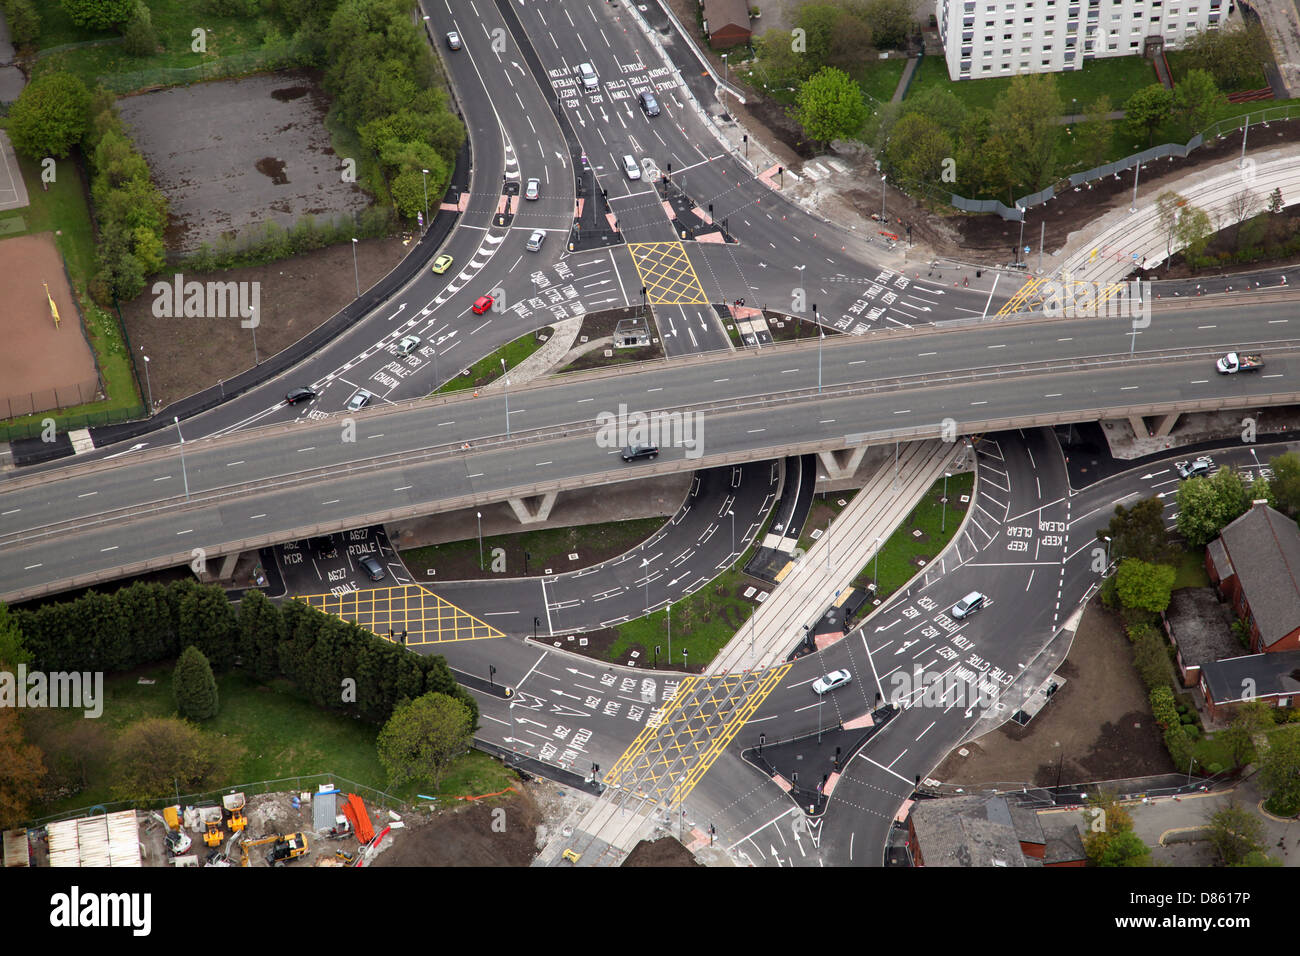 aerial view of a major roundabout junction with lots of road markings and a new tramway in Oldham - Stock Image